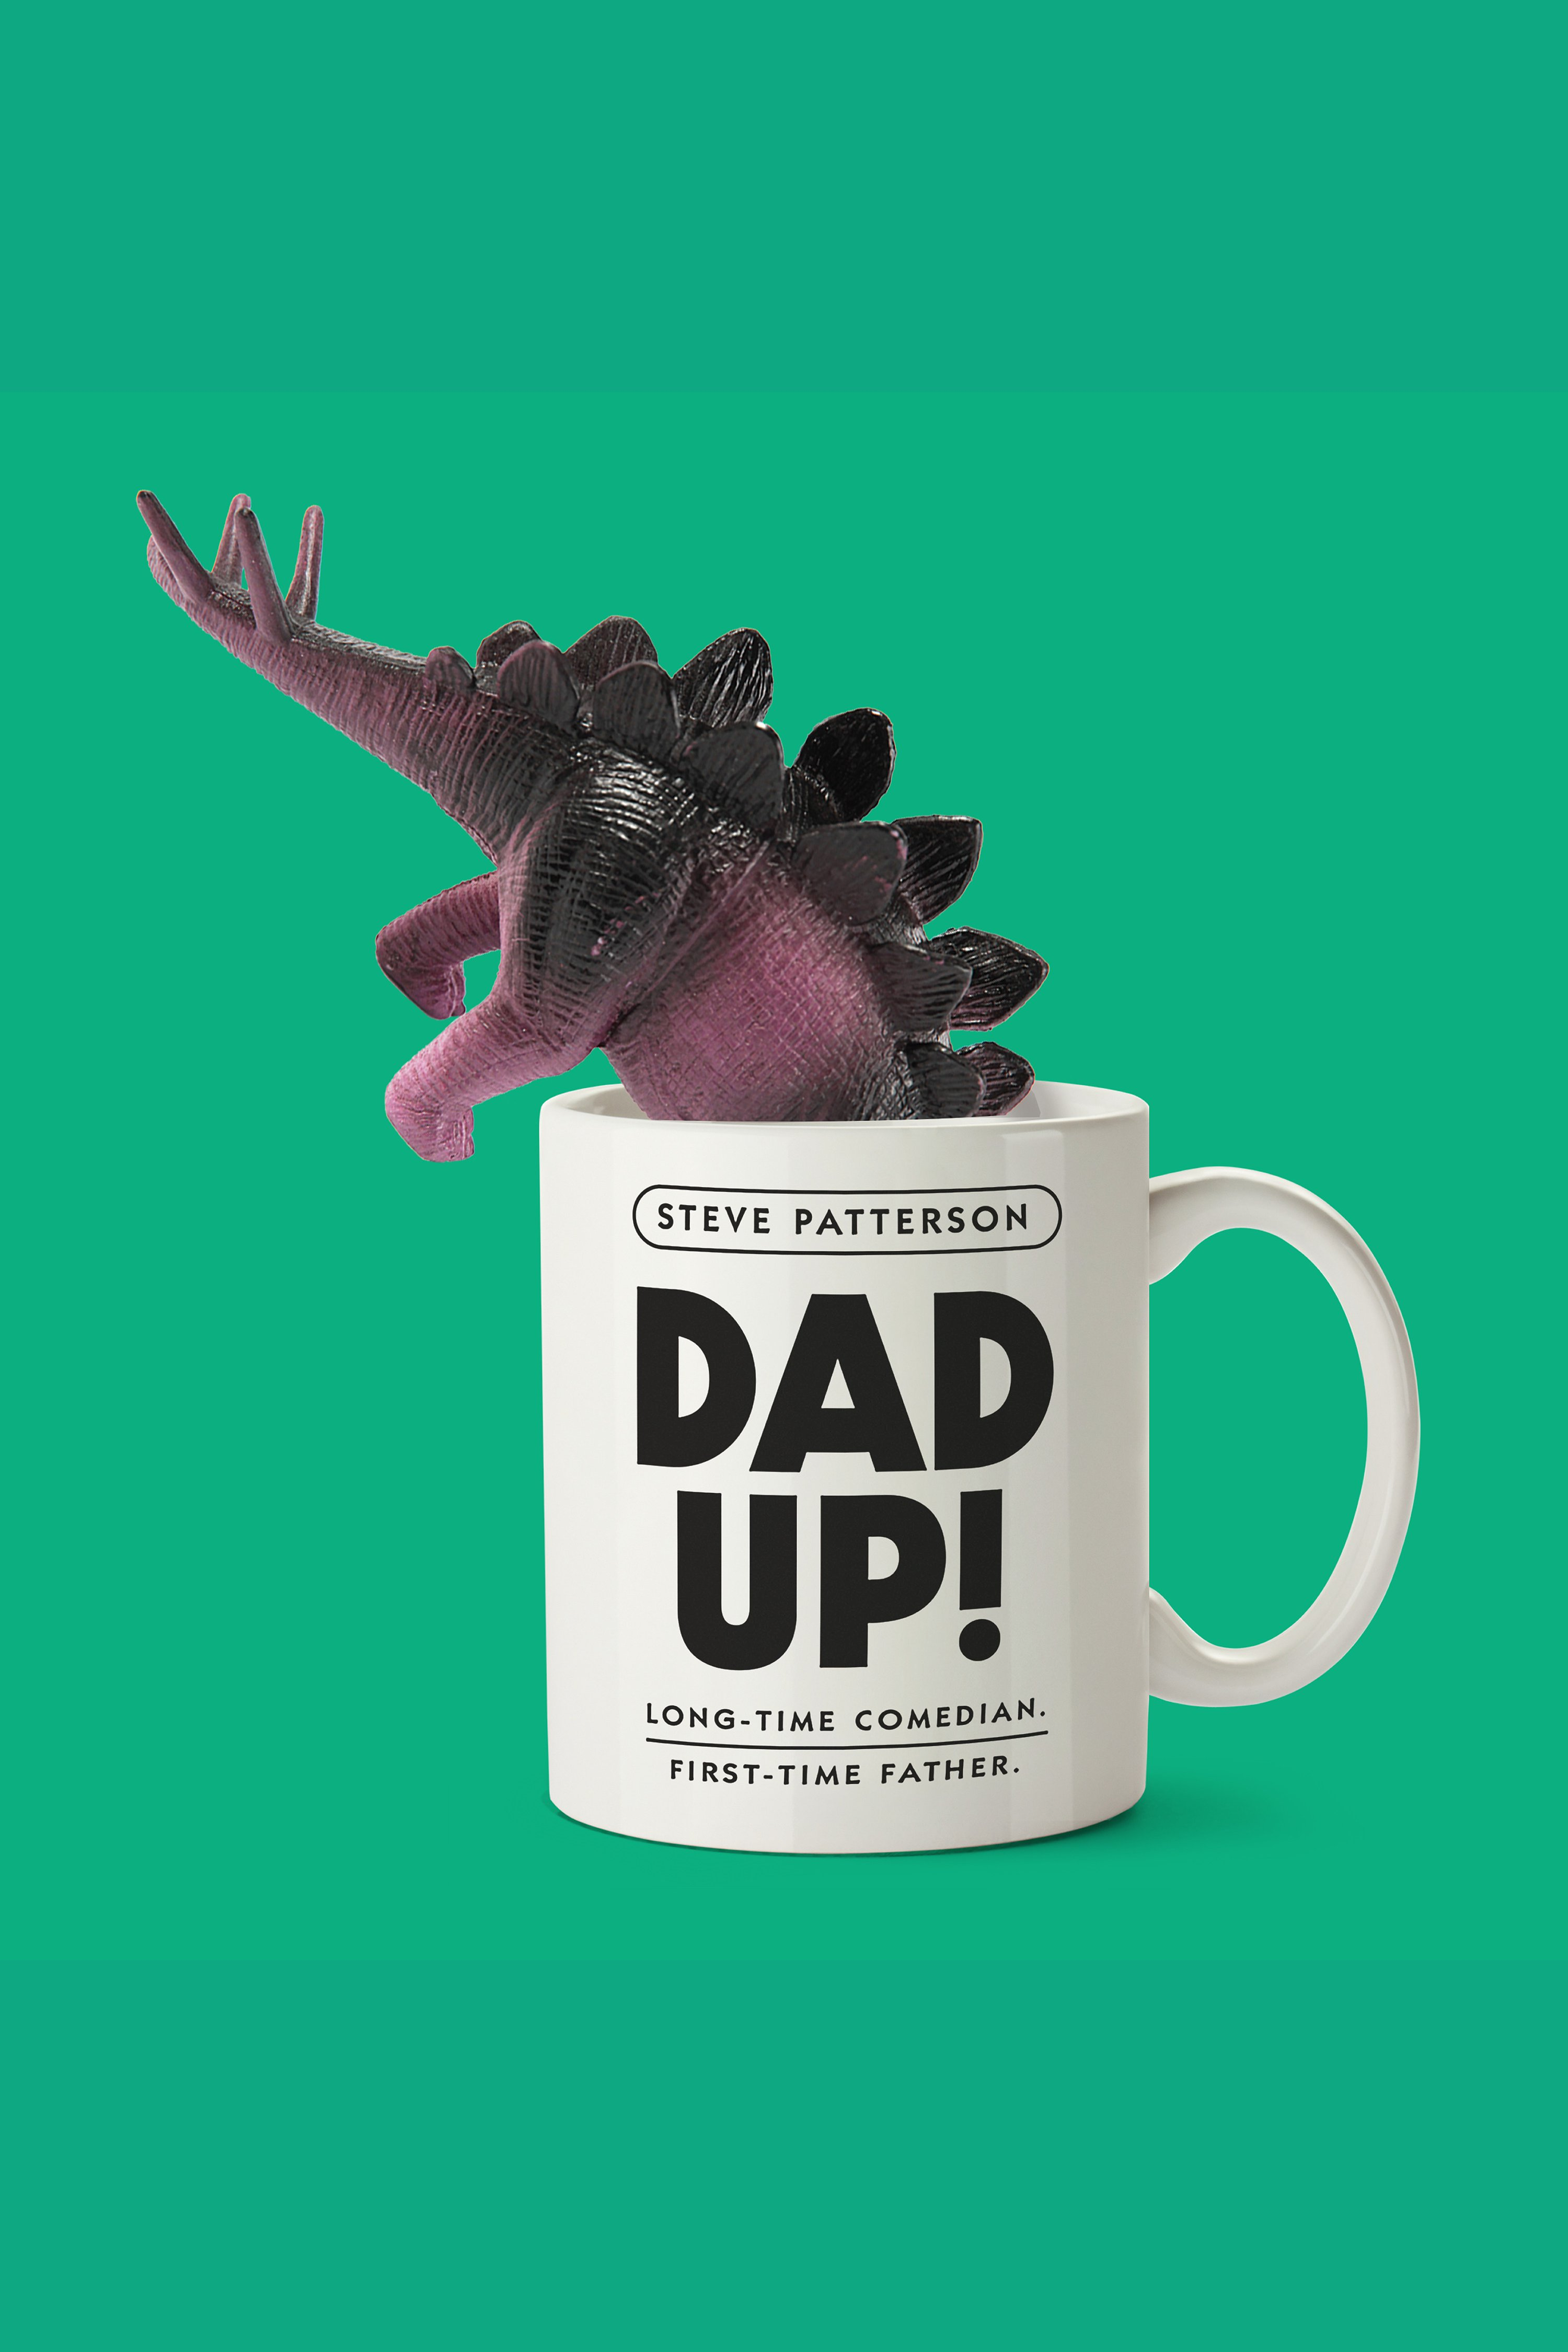 Dad Up! Long-Time Comedian. First-Time Father.